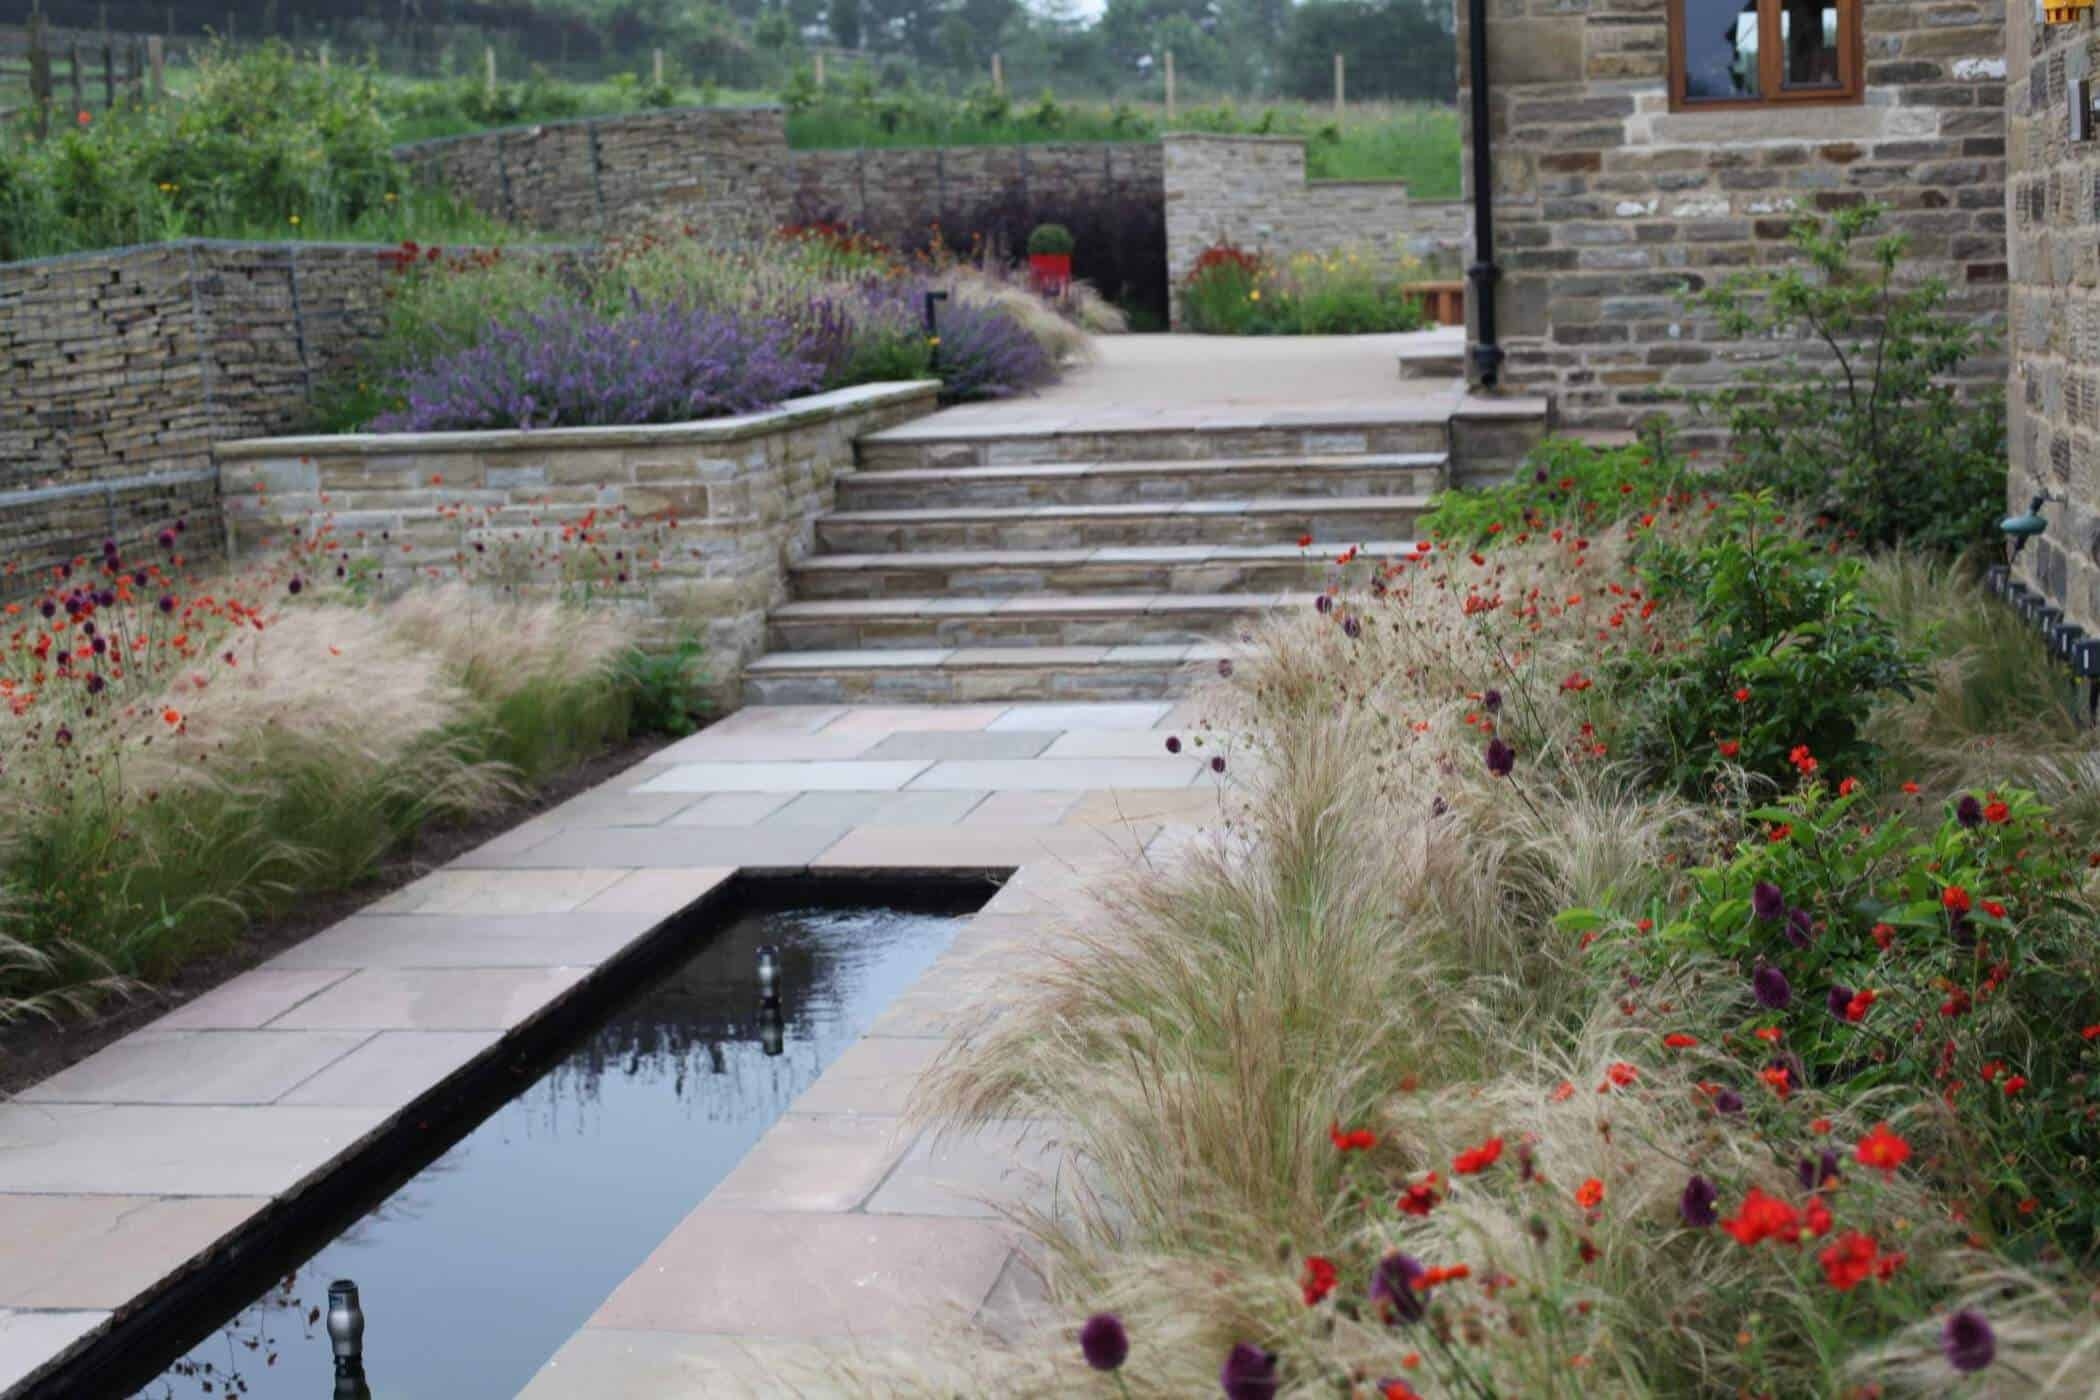 Barn Conversion-bestall and co-Seating Area-Barn Conversion- Water Feature